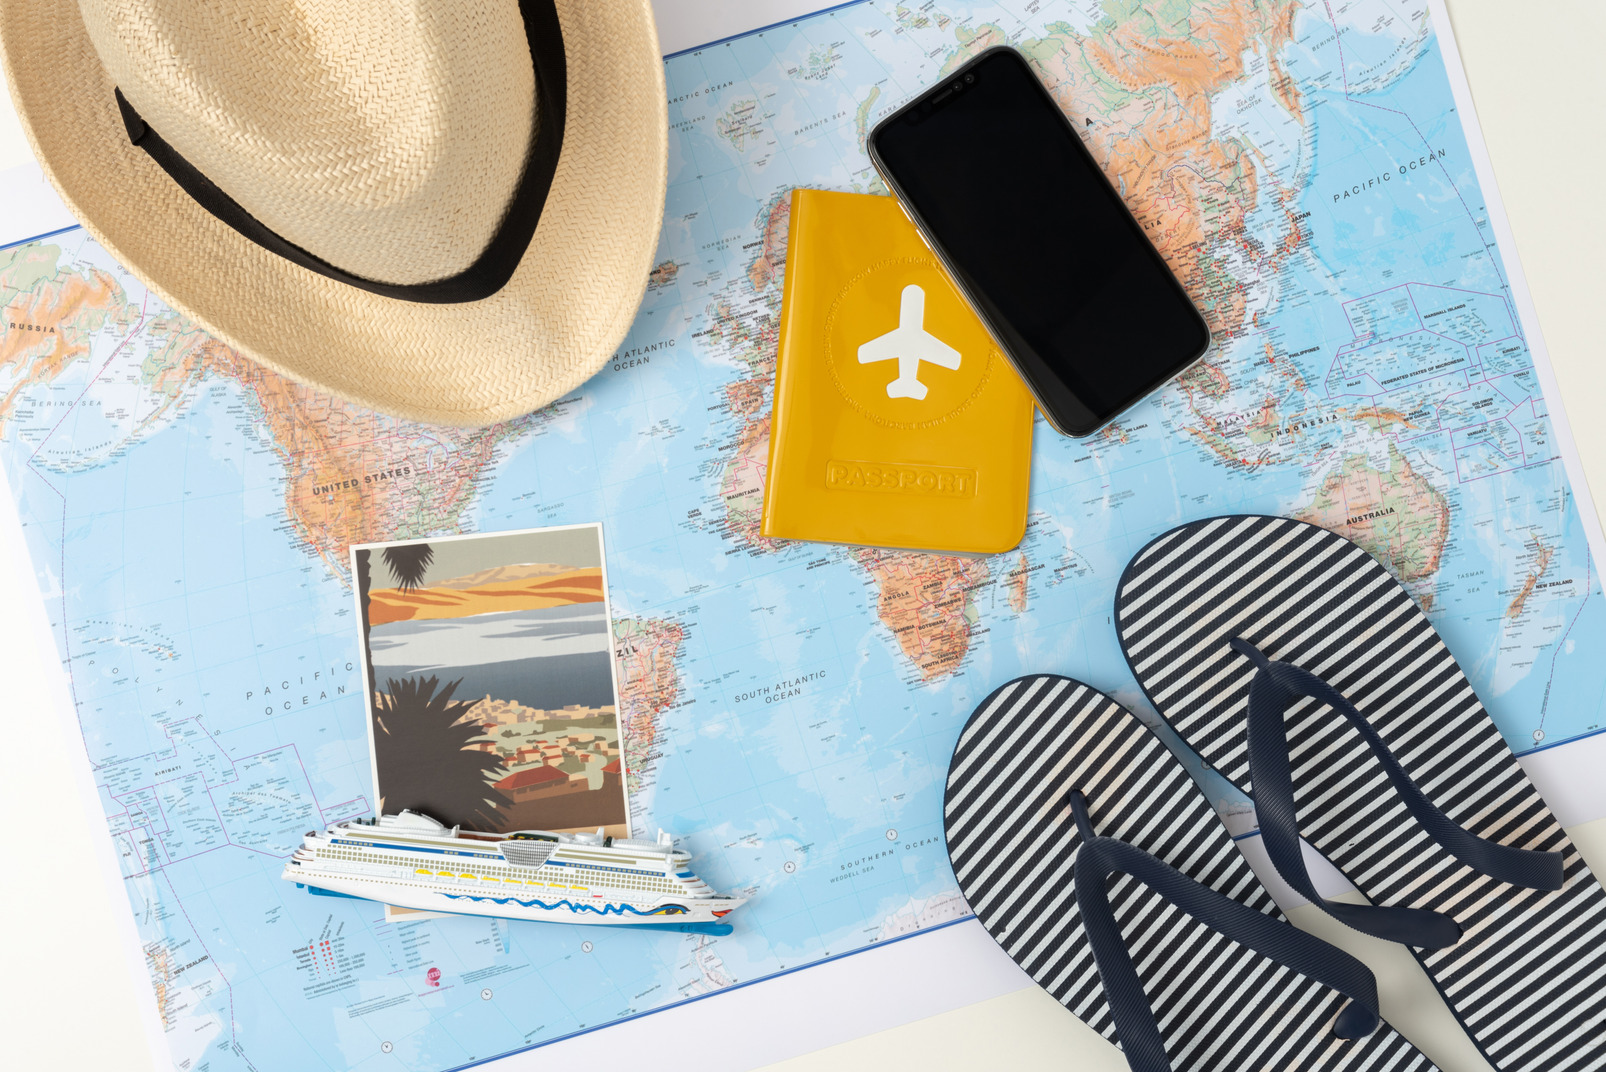 A passport, tiny ship model, flip-flops and a straw hat, all laid out beautifully over the world map, because i'm not just a tourist, but a designer